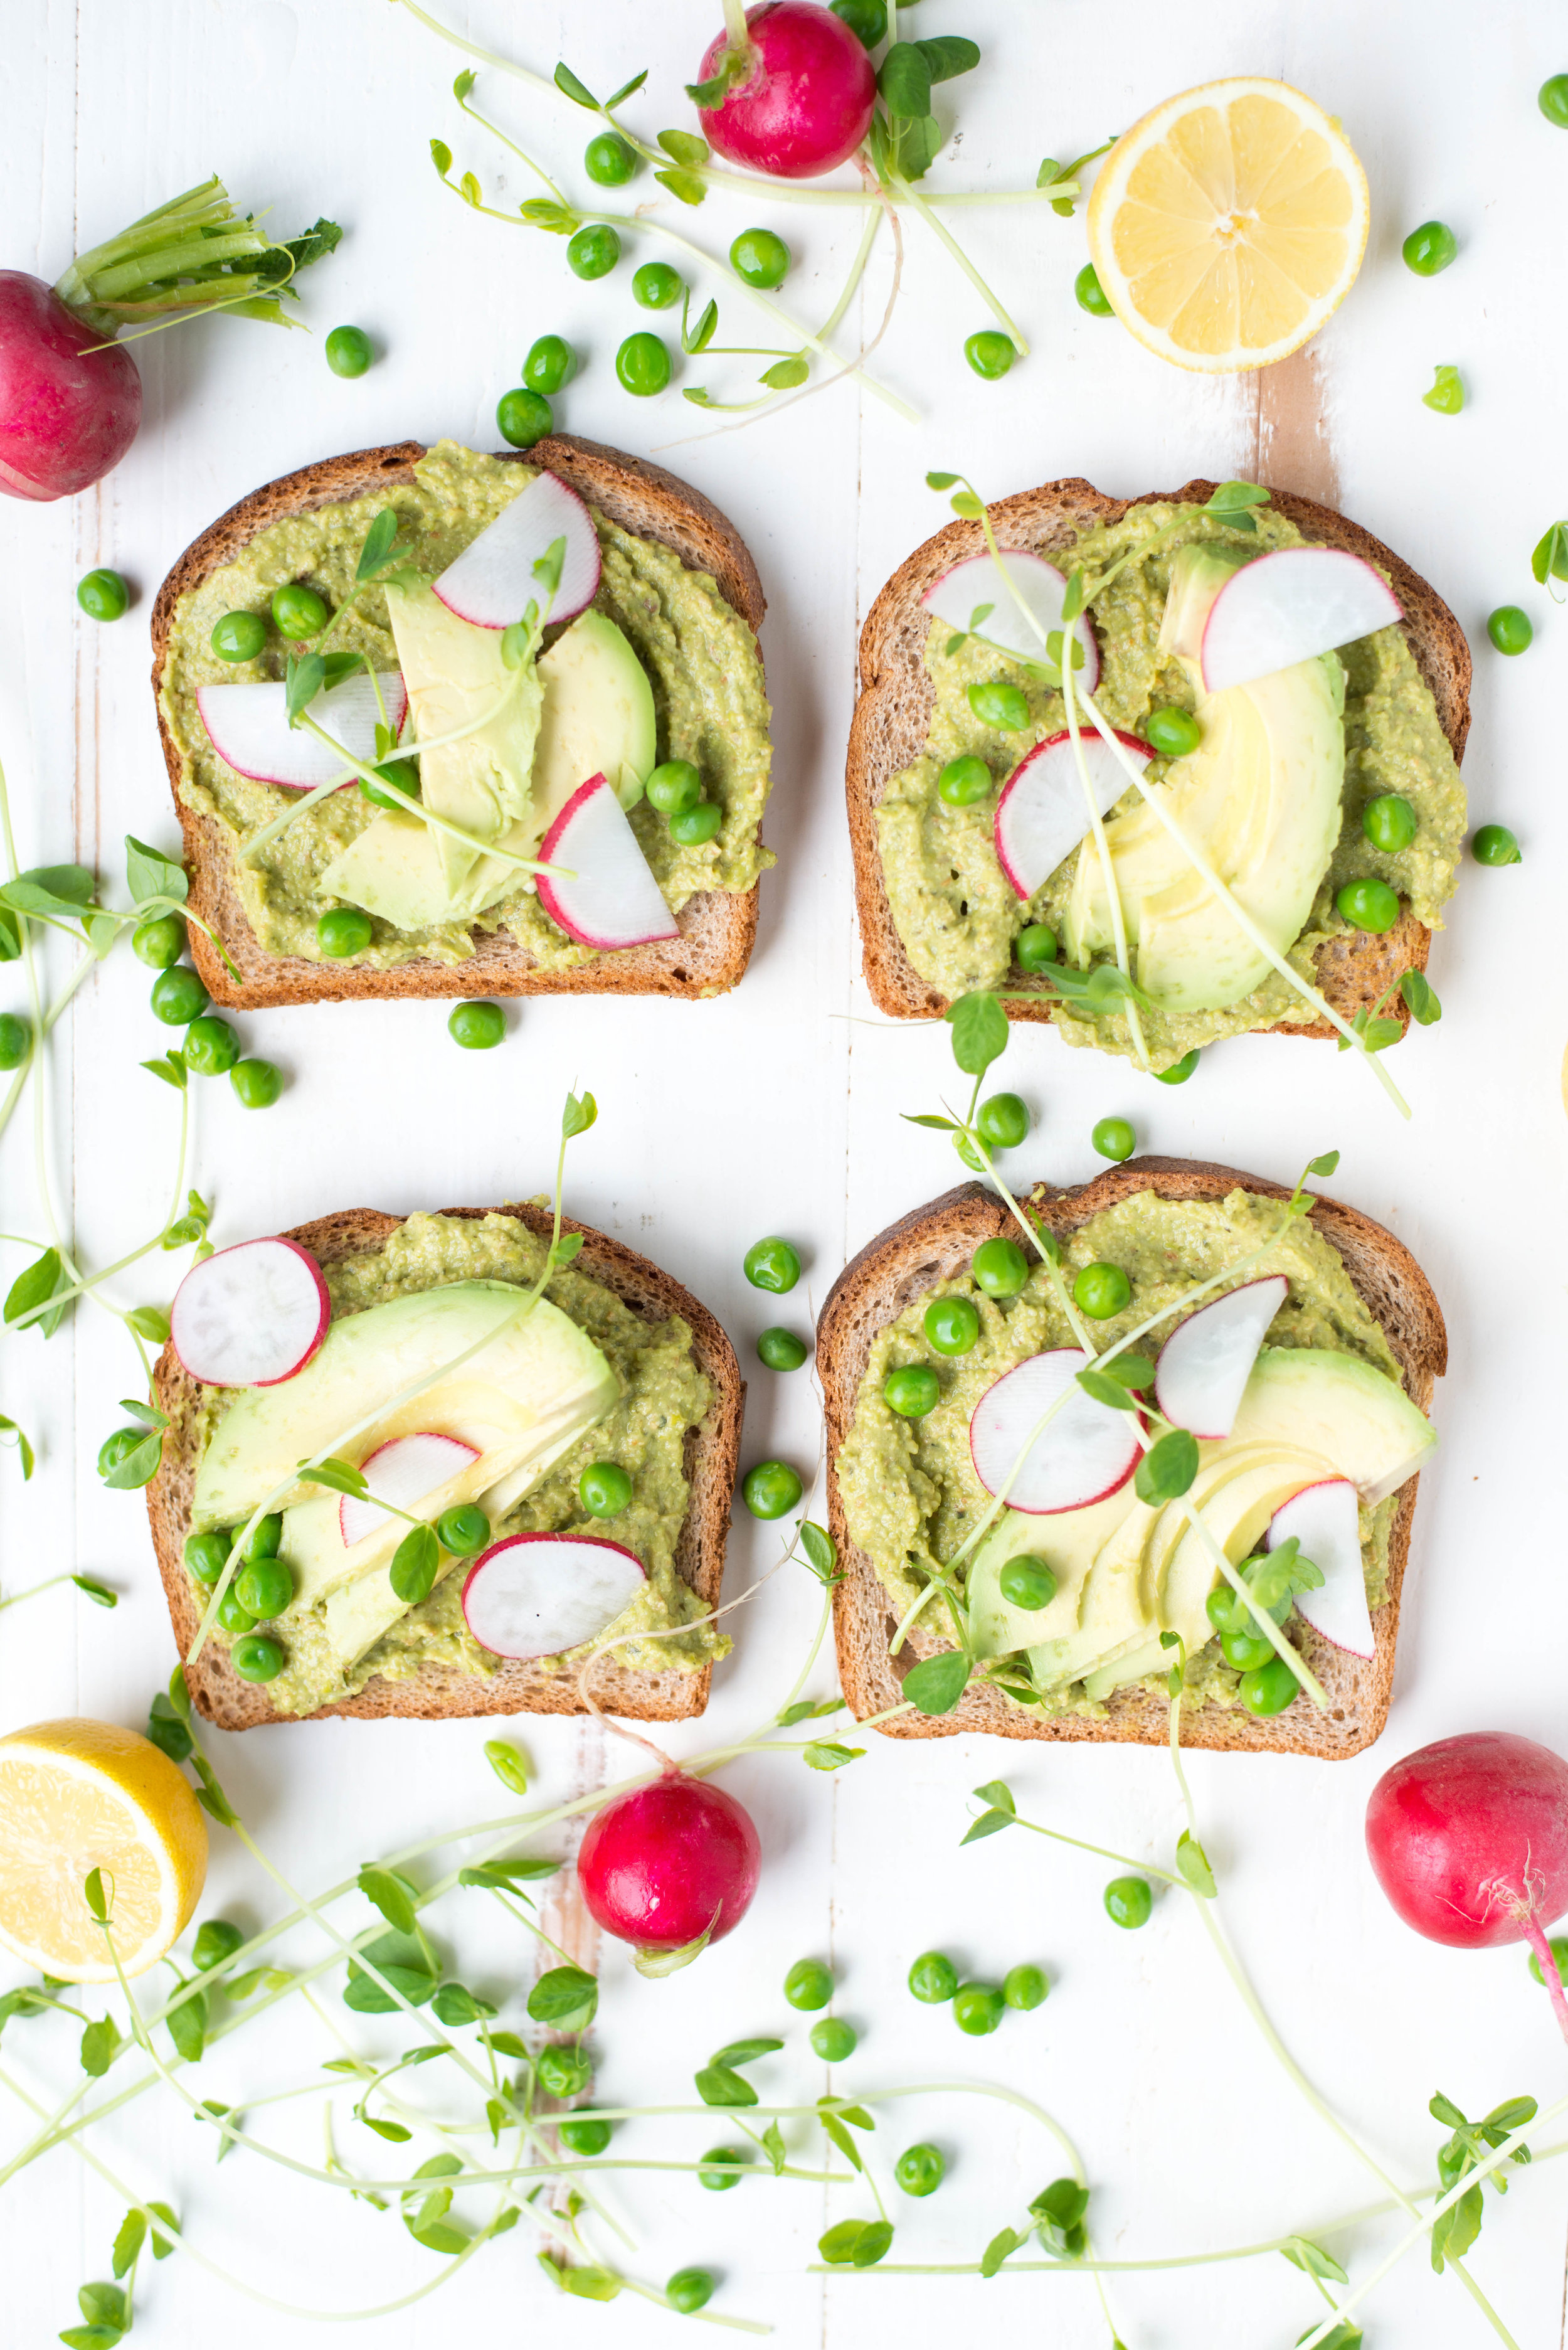 Creamy, dreamy, and packed with protein, Sweet Pea Power Pesto Avocado Toast is easy to whip up and perfect for a quick lunch or festive brunch.